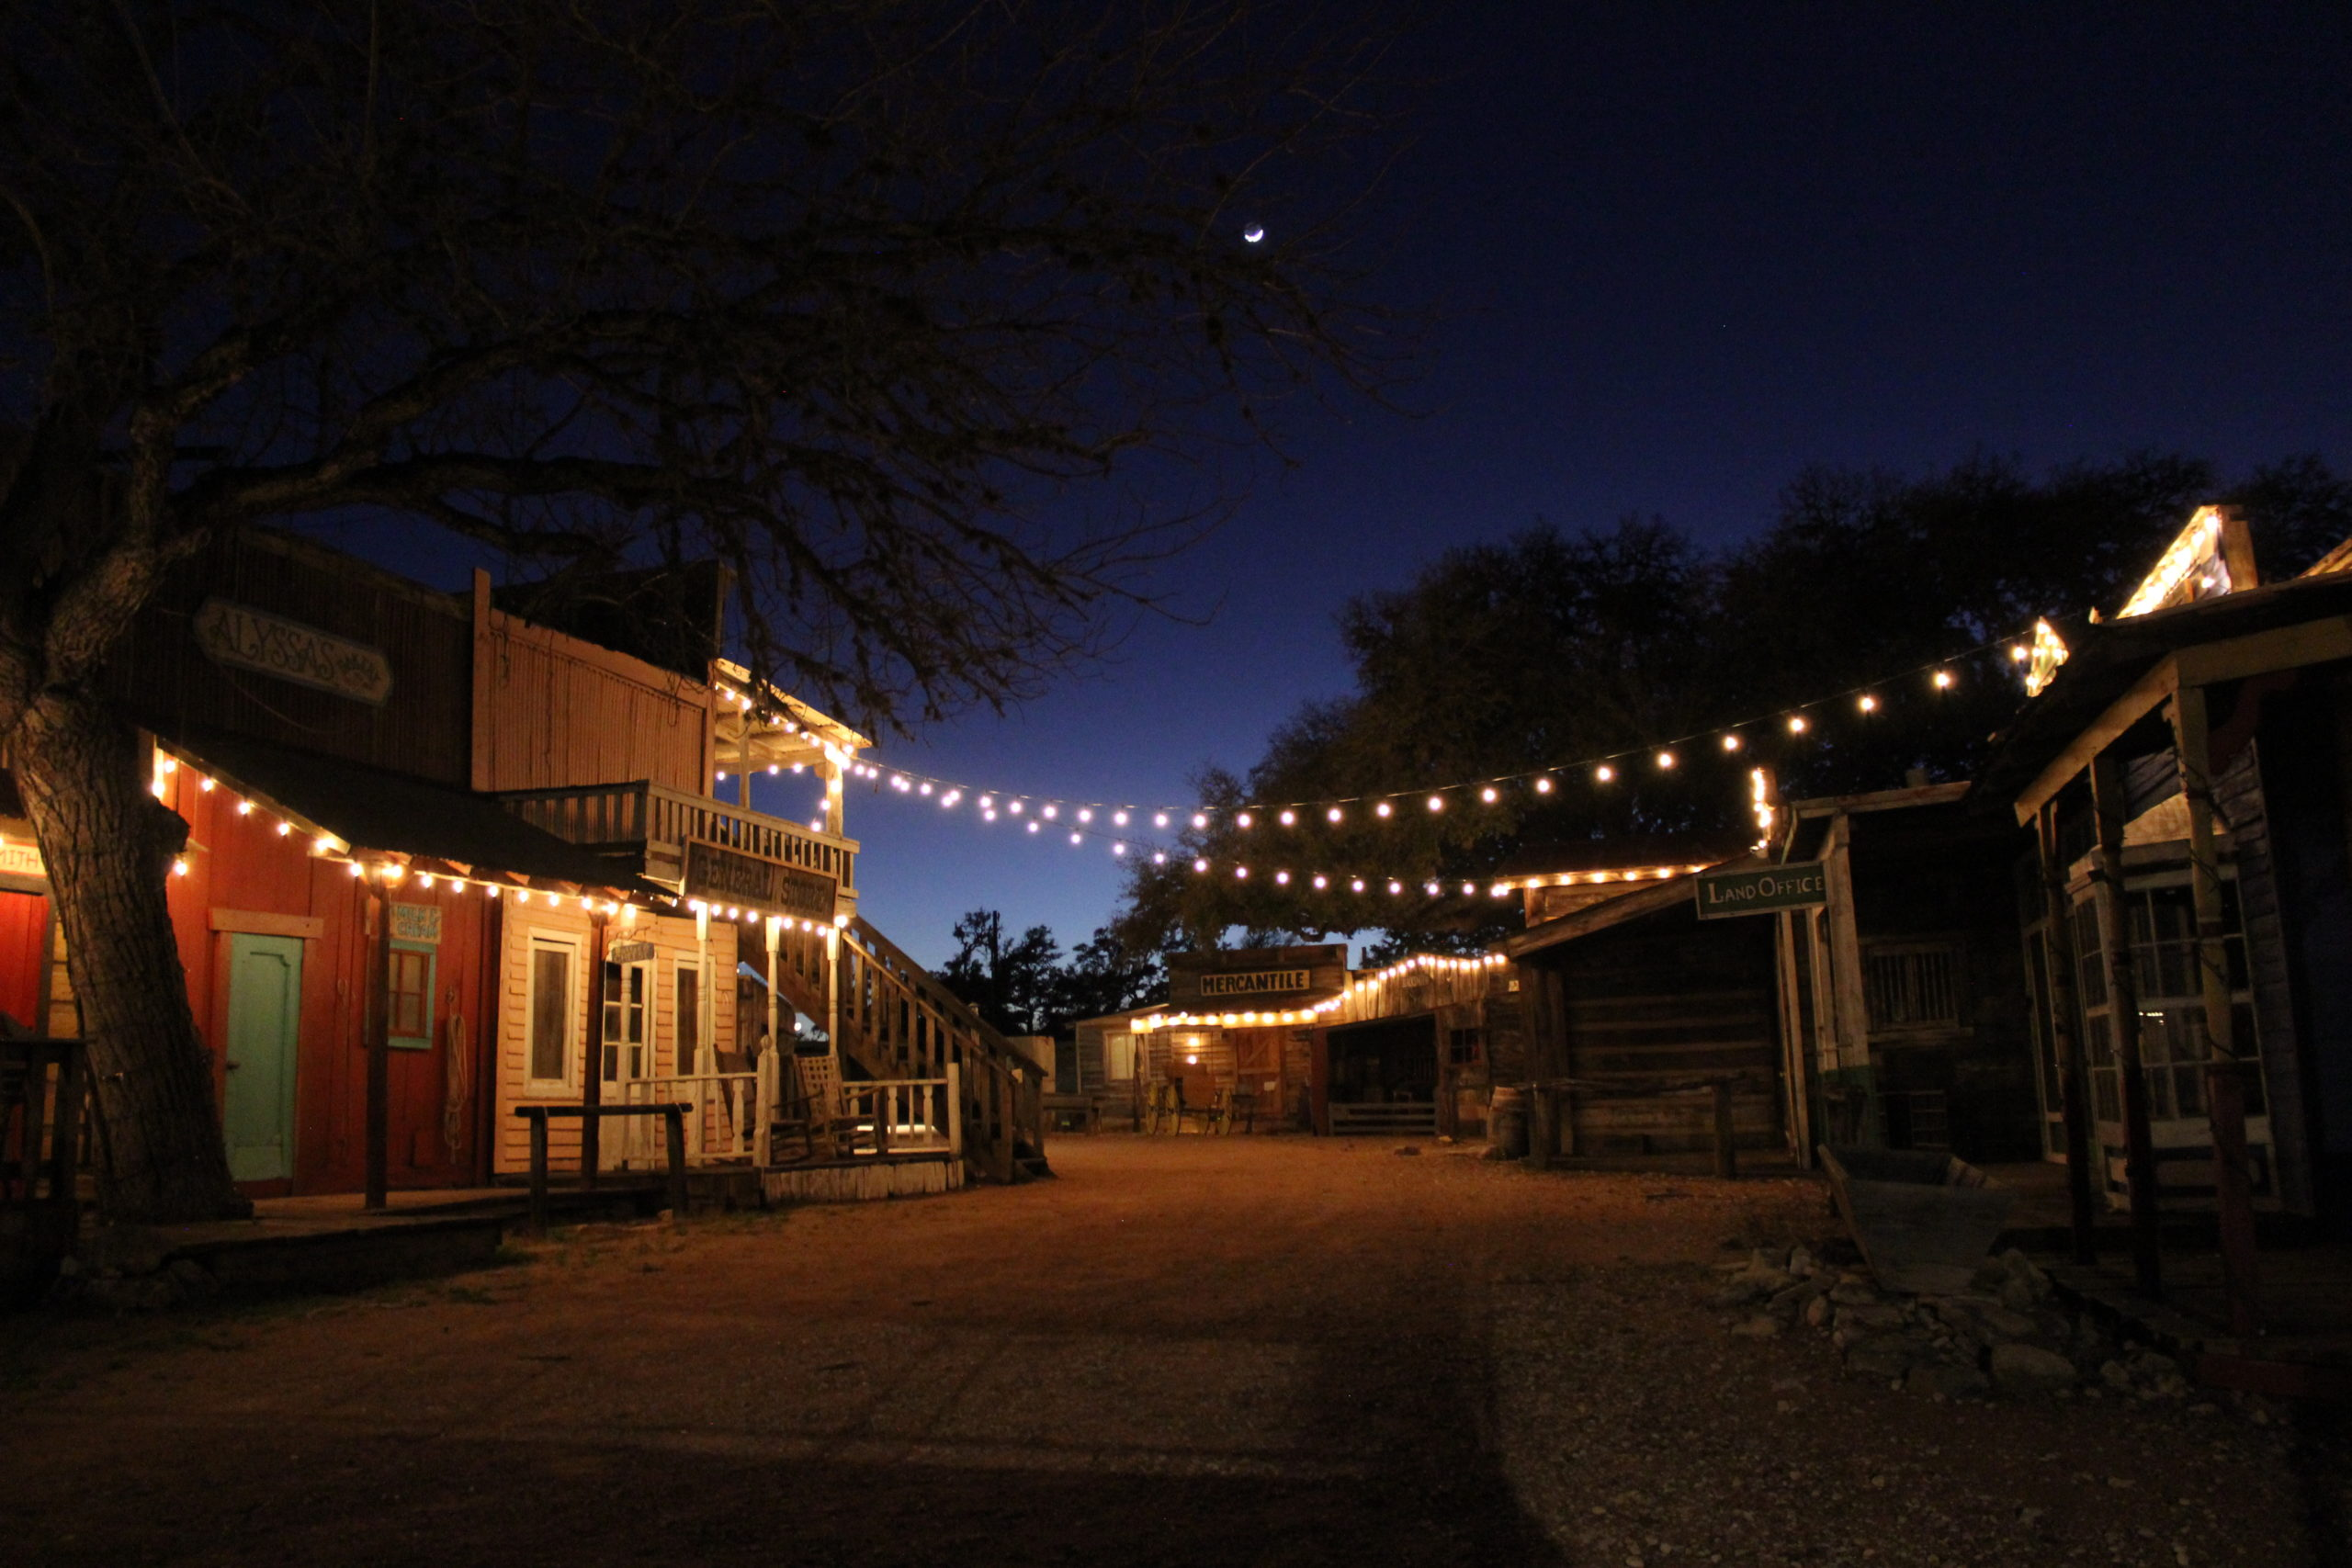 The Old West town at Enchanted Springs Ranch lit up at night